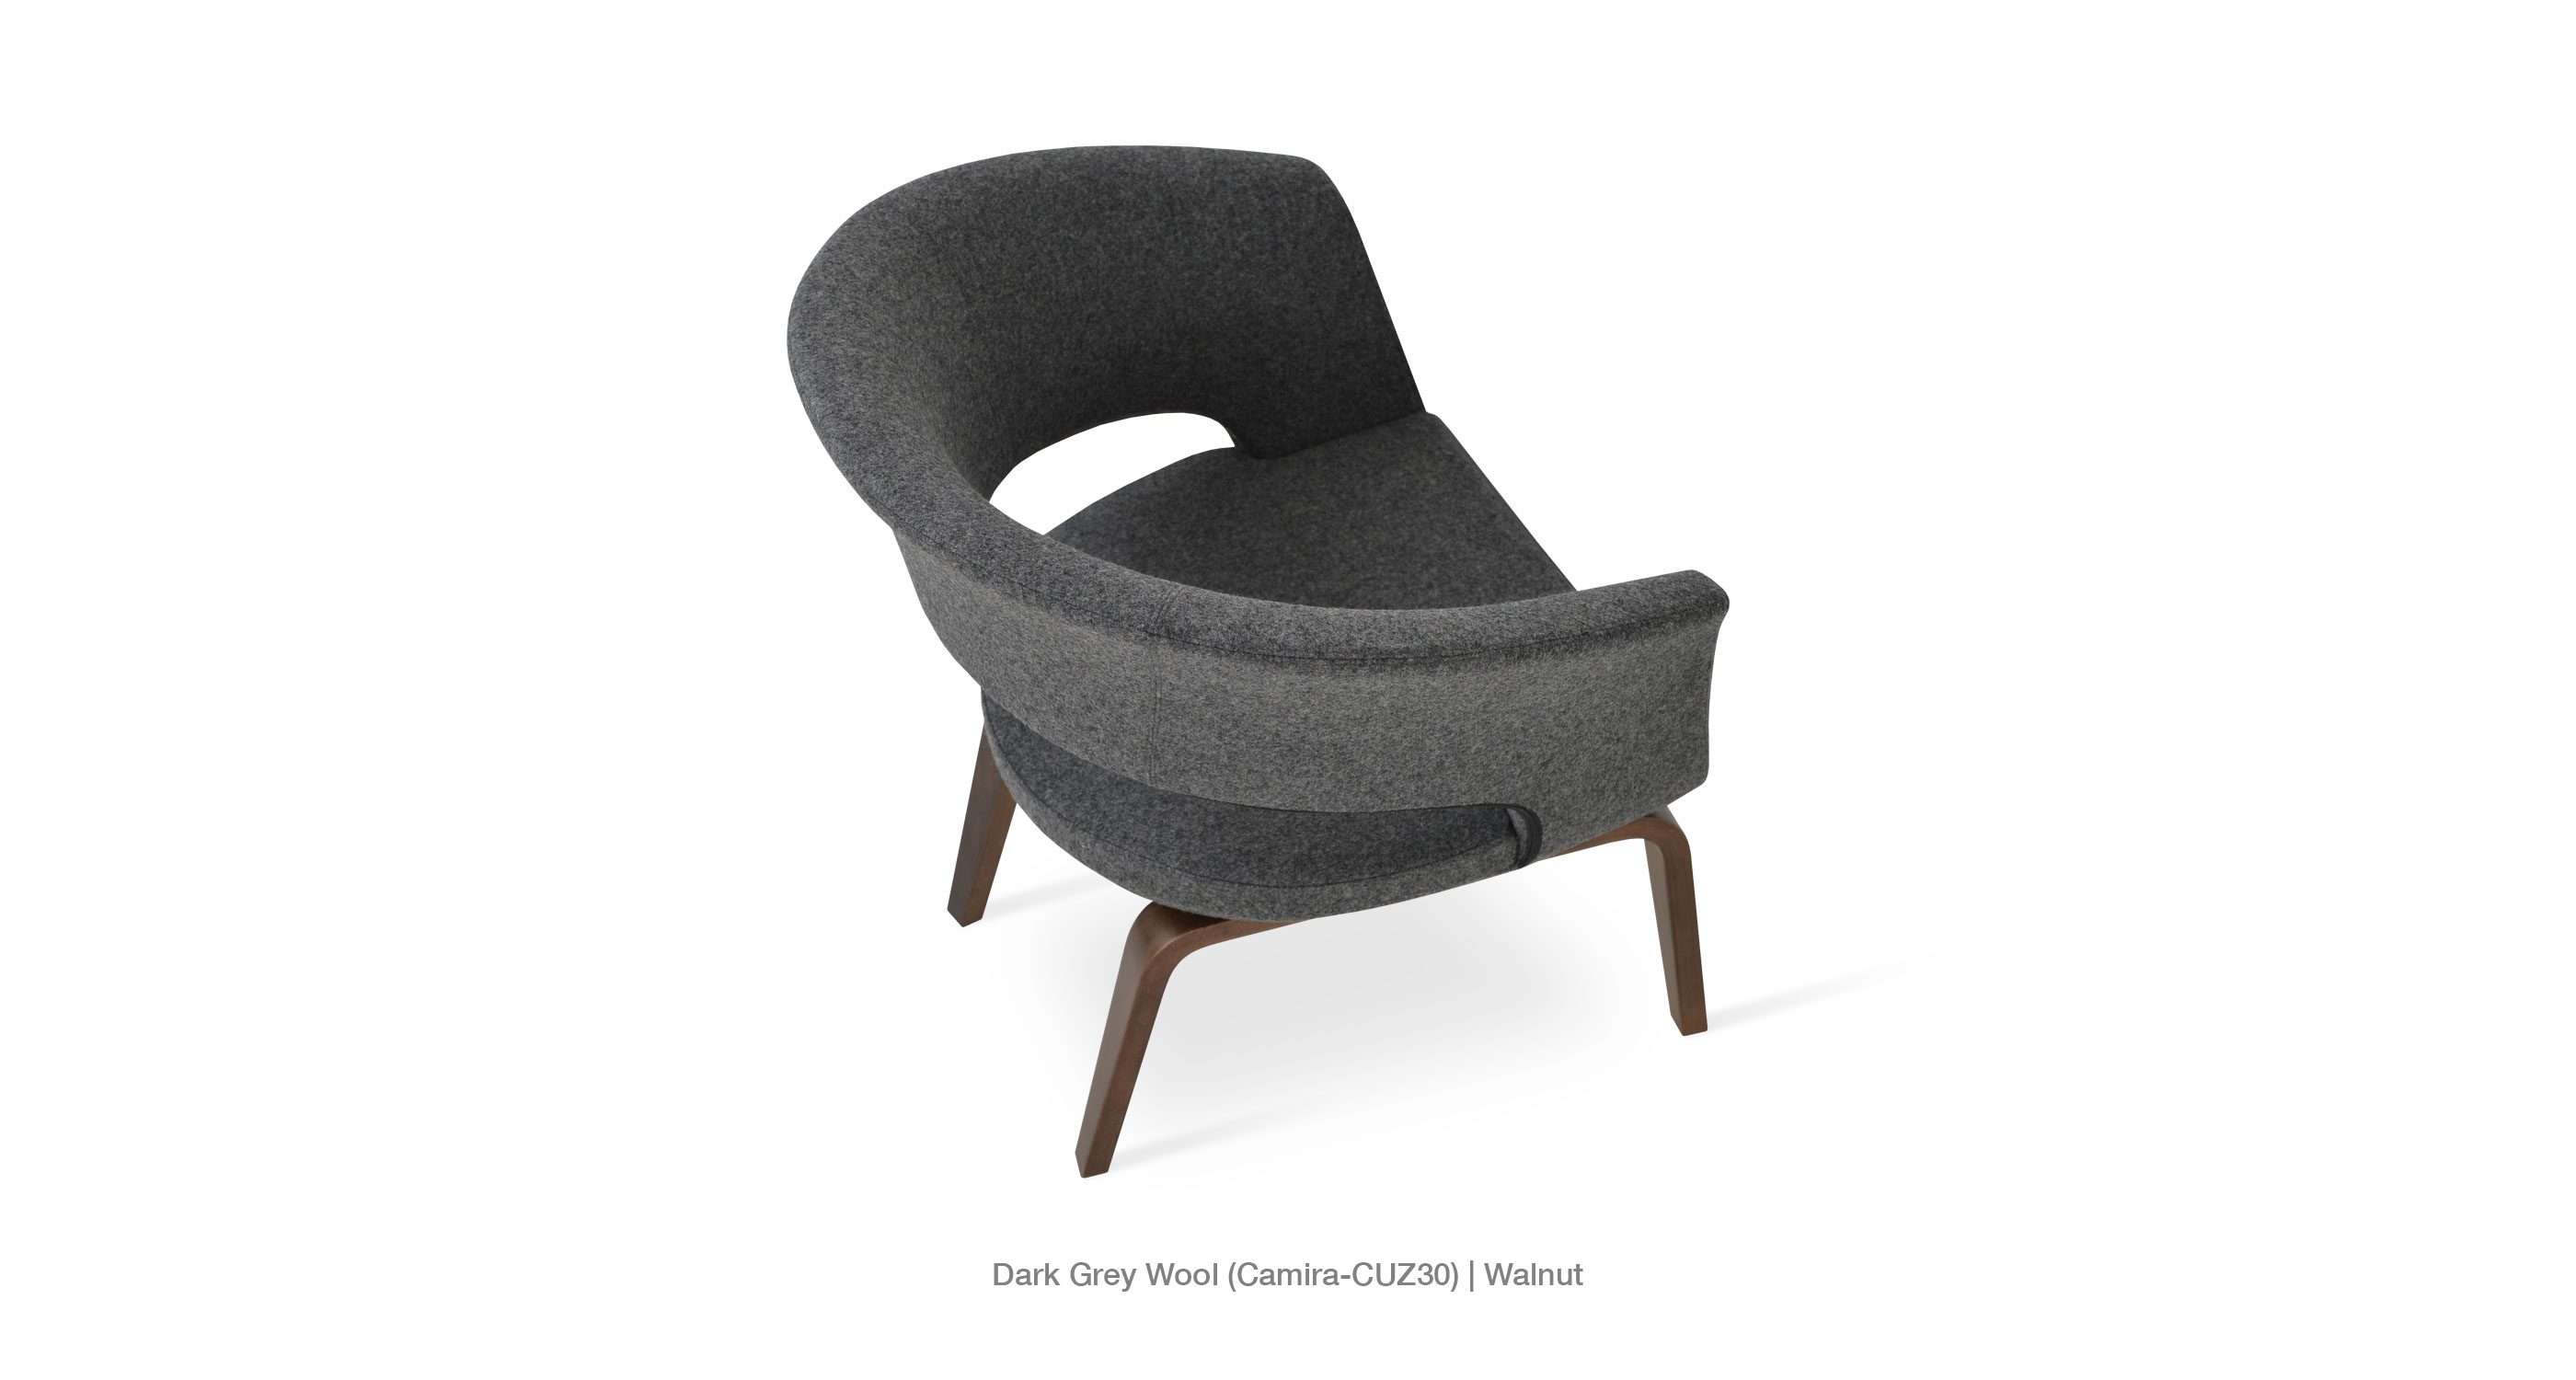 dark grey wool - walnut